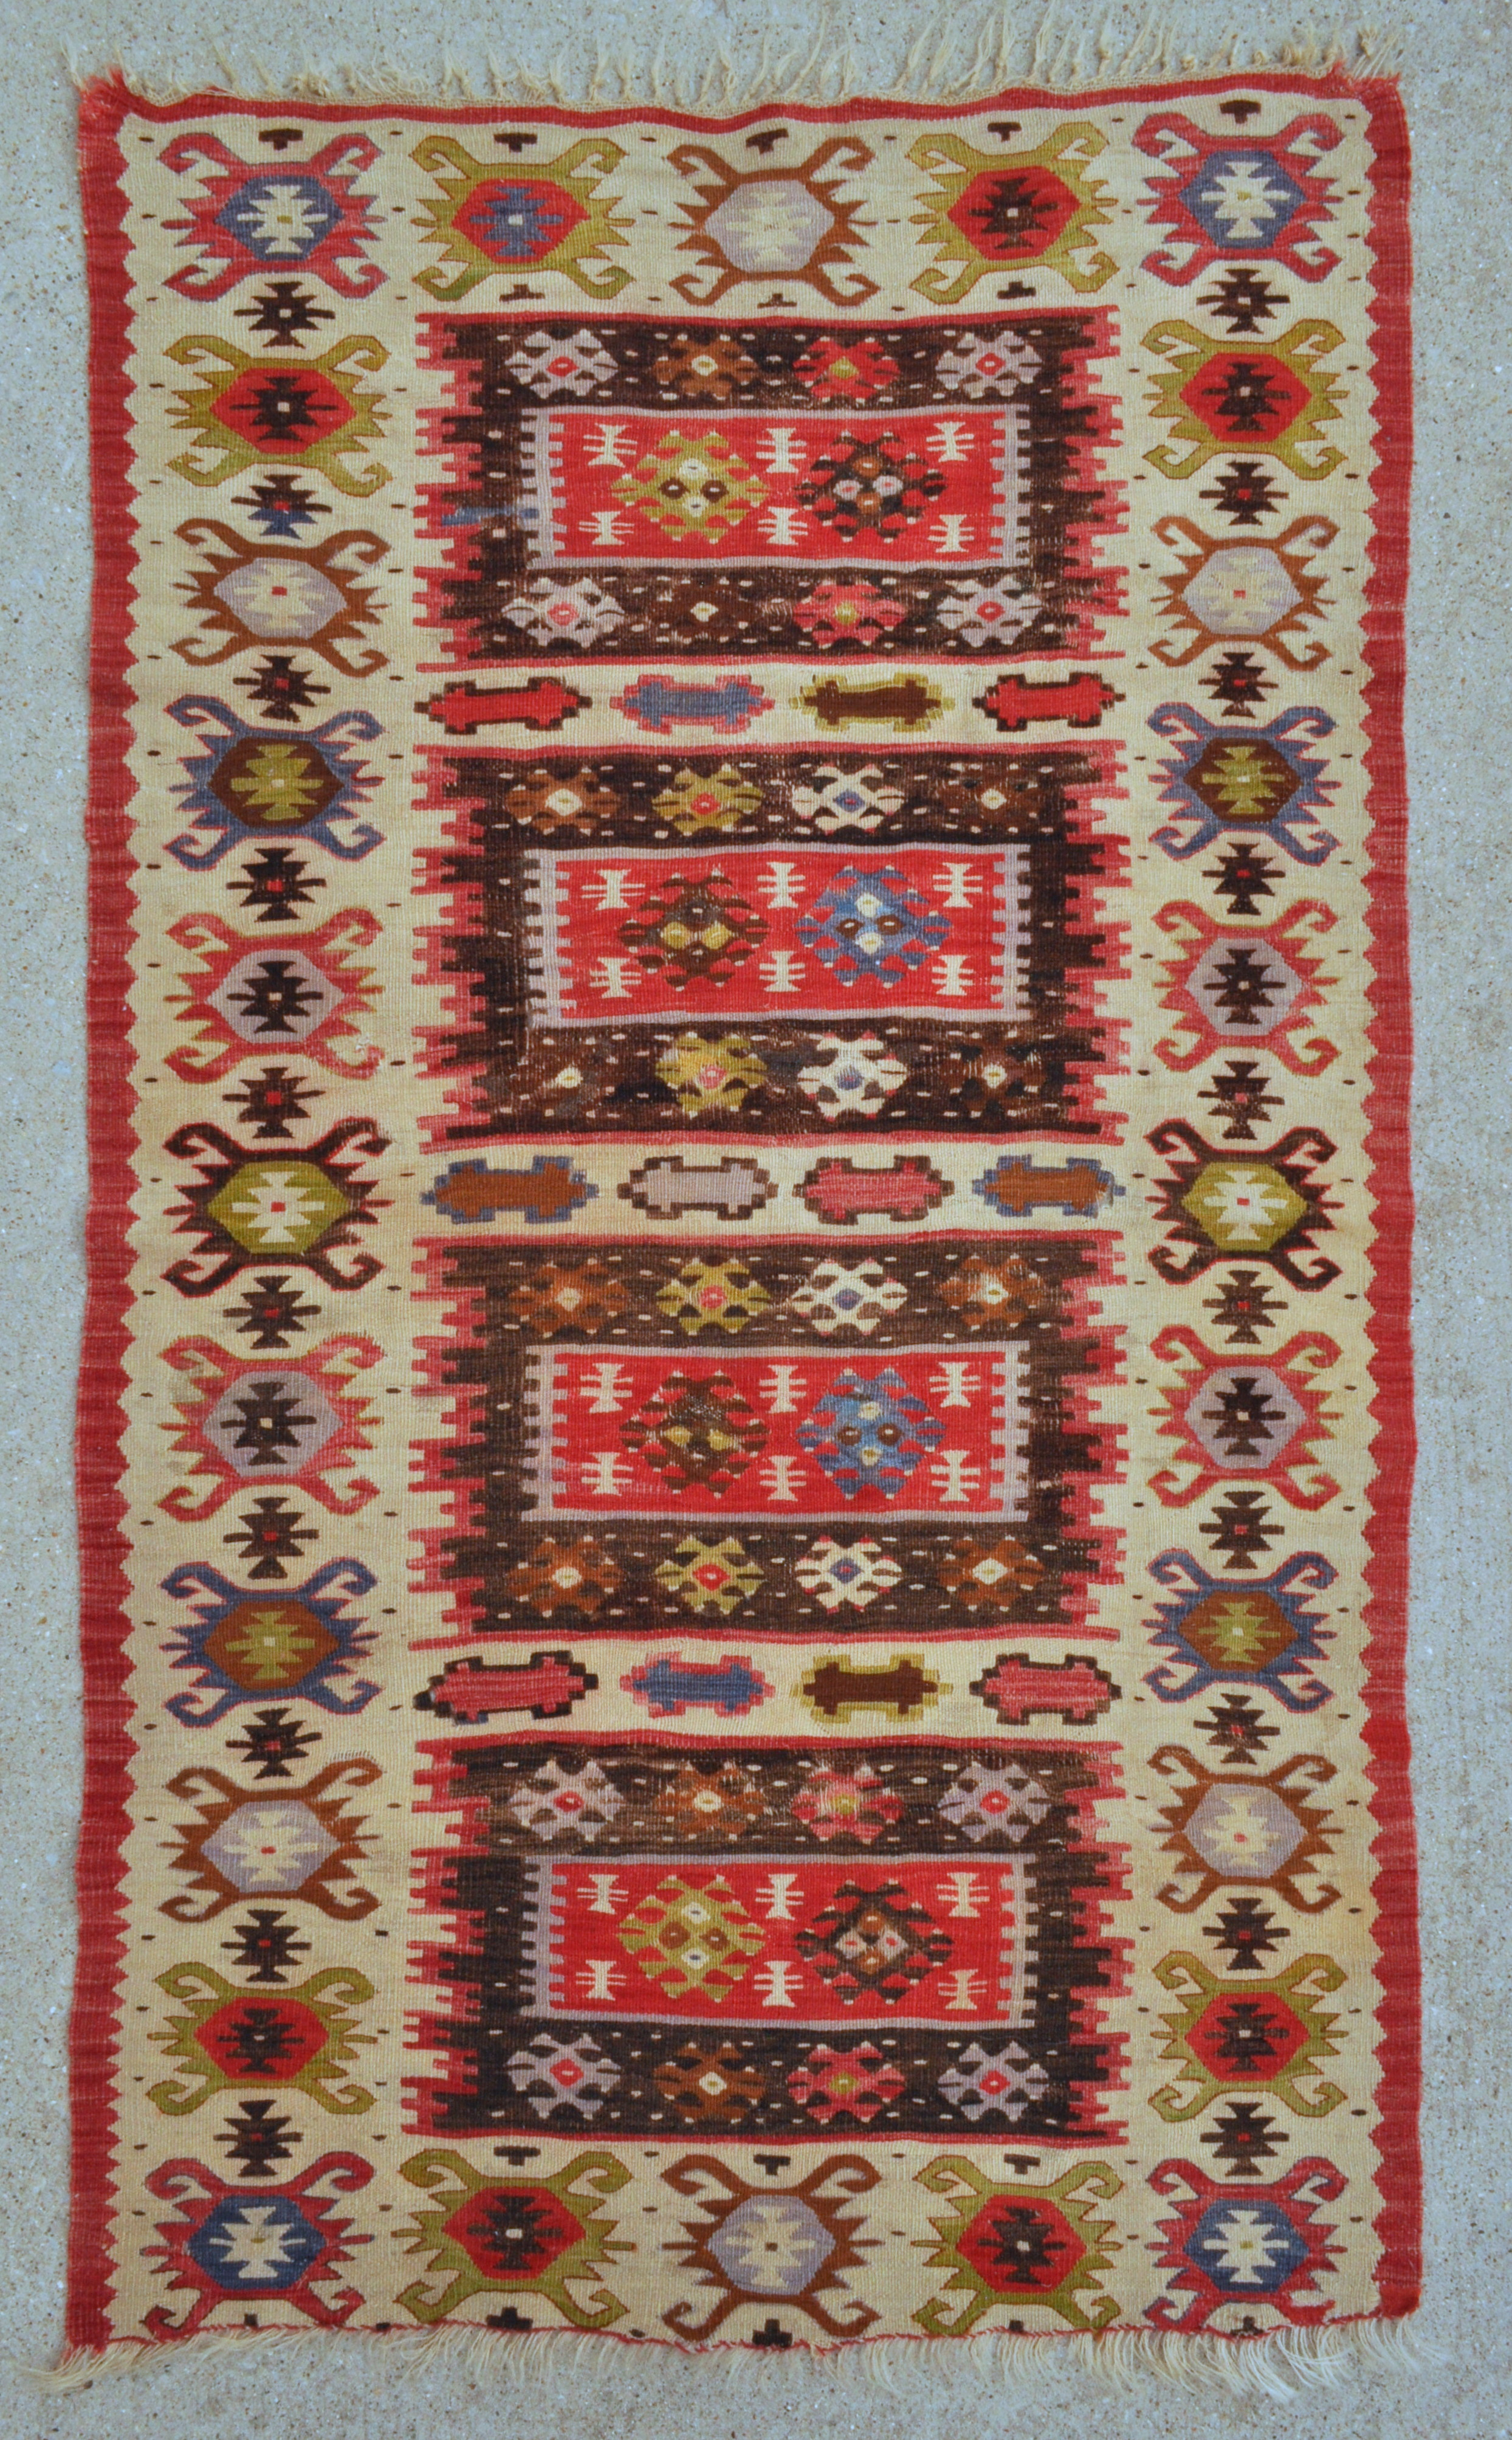 kilim authentic patterns rug colors muted small soft artful rugs il old abstract vintage p turkish fullxfull wall